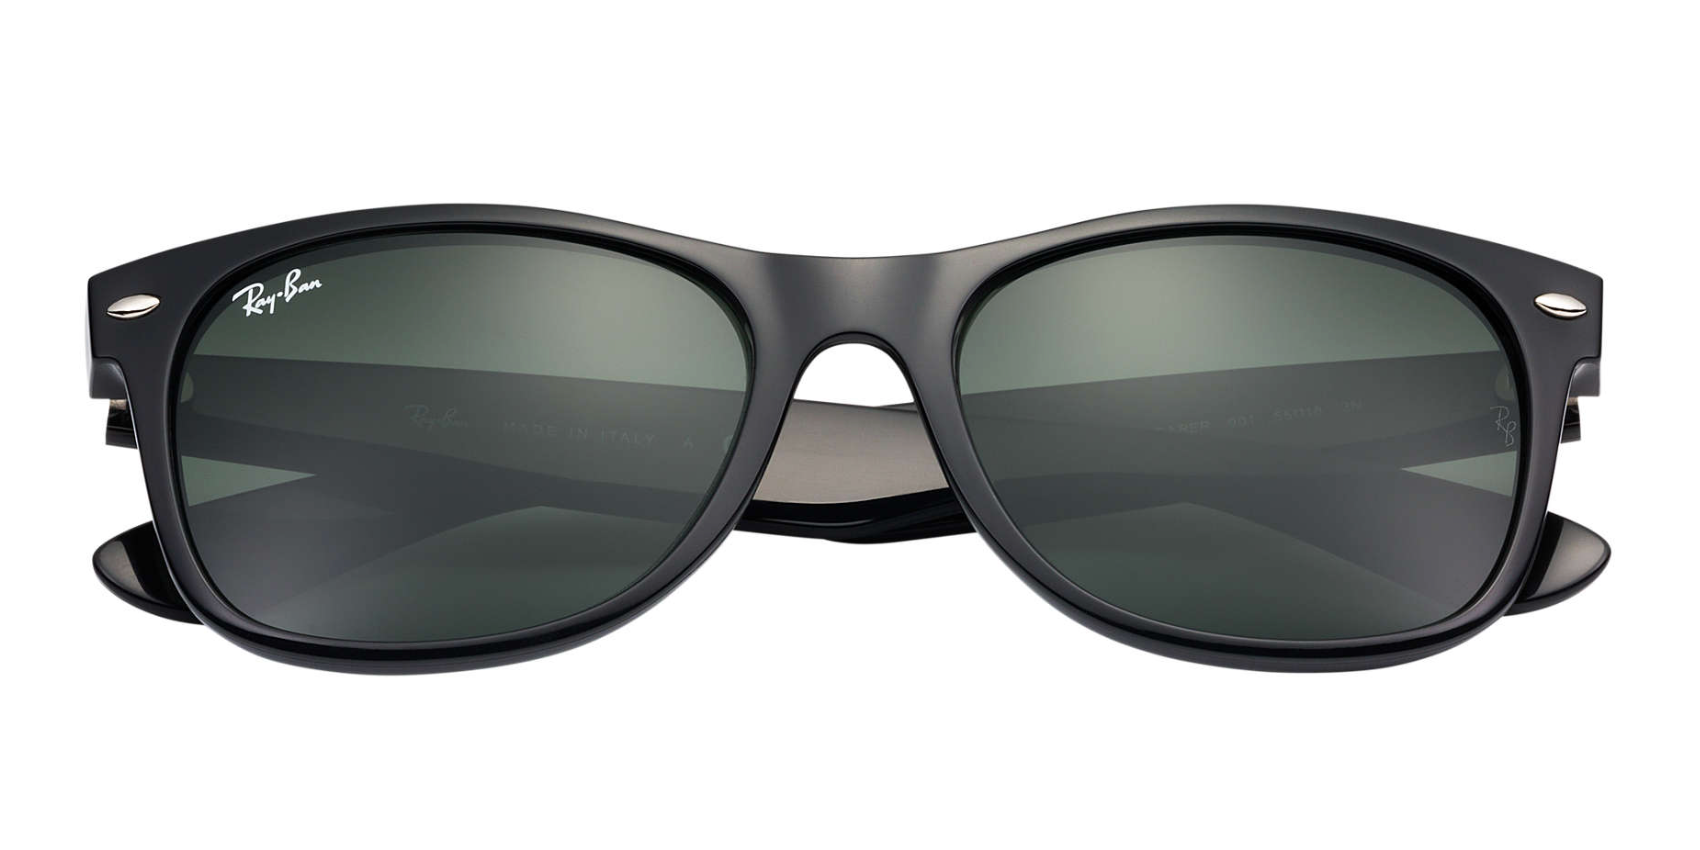 ed489b6c9aa Ray-Ban New Wayfarer Black Classic Sunglasses RB2132 - Flight Sunglasses